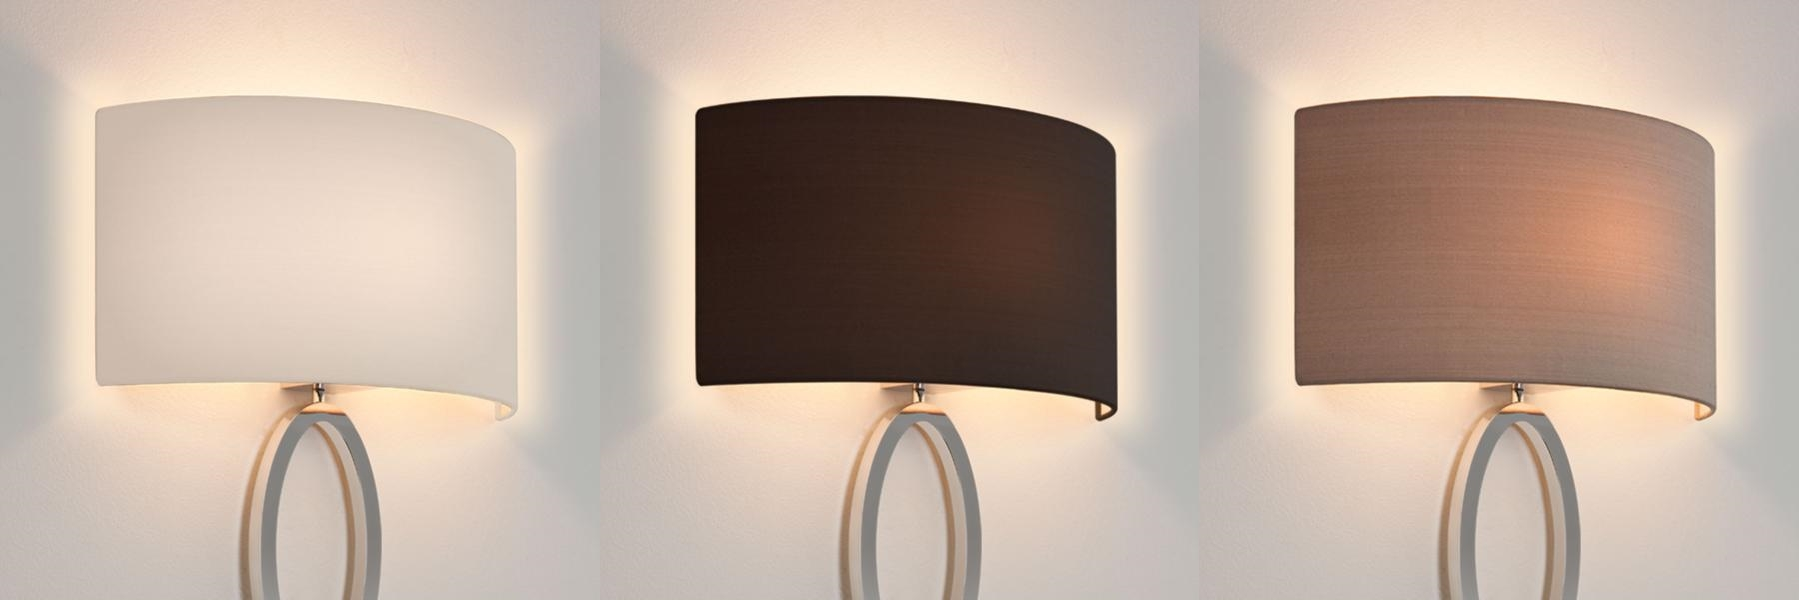 Details about Astro Lima fabric half lampshade ONLY for wall light with E27  / ES shade ring